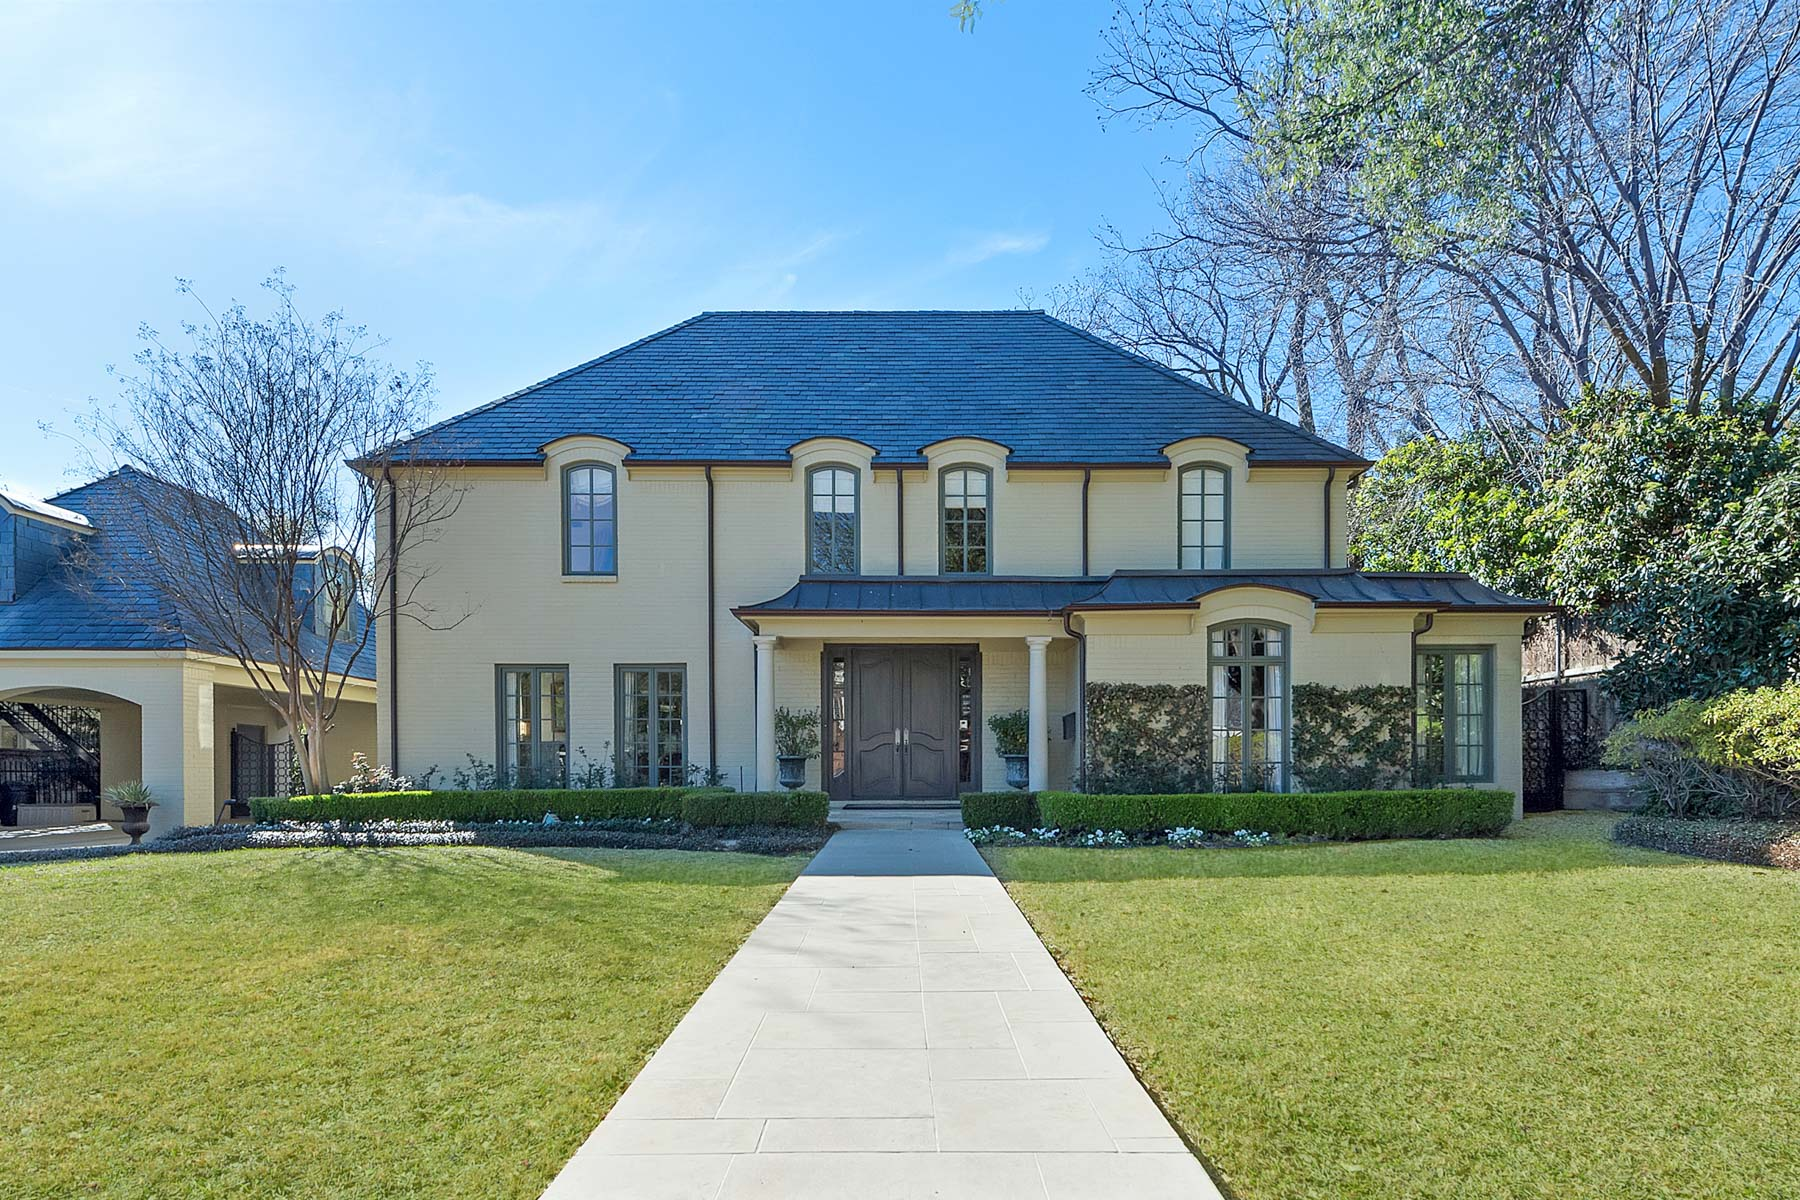 Casa Unifamiliar por un Venta en 1410 Washington Terrace, Fort Worth Fort Worth, Texas, 76107 Estados Unidos